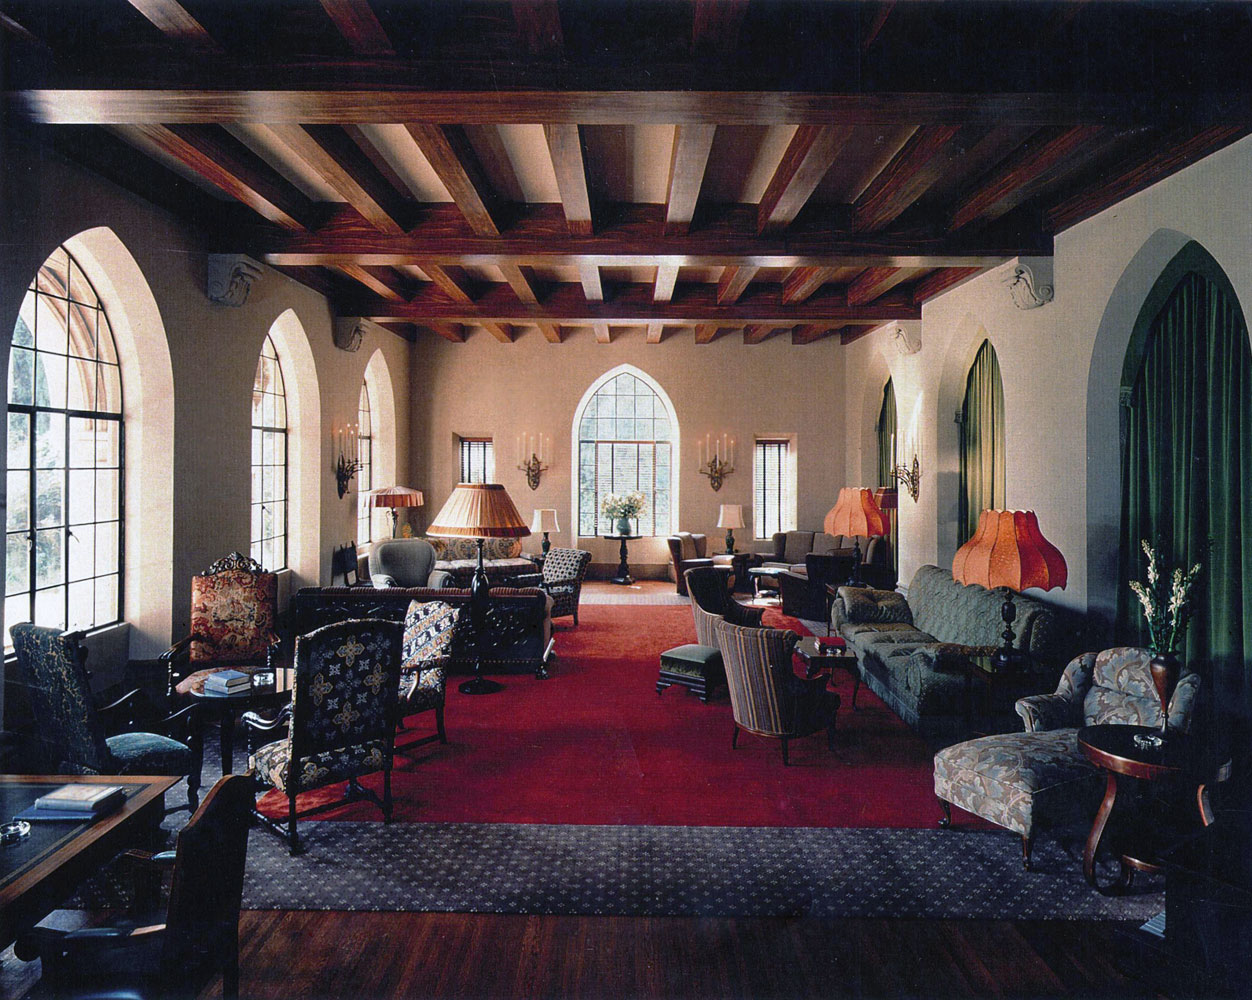 Pics for chateau marmont interior bungalows for Interior pics